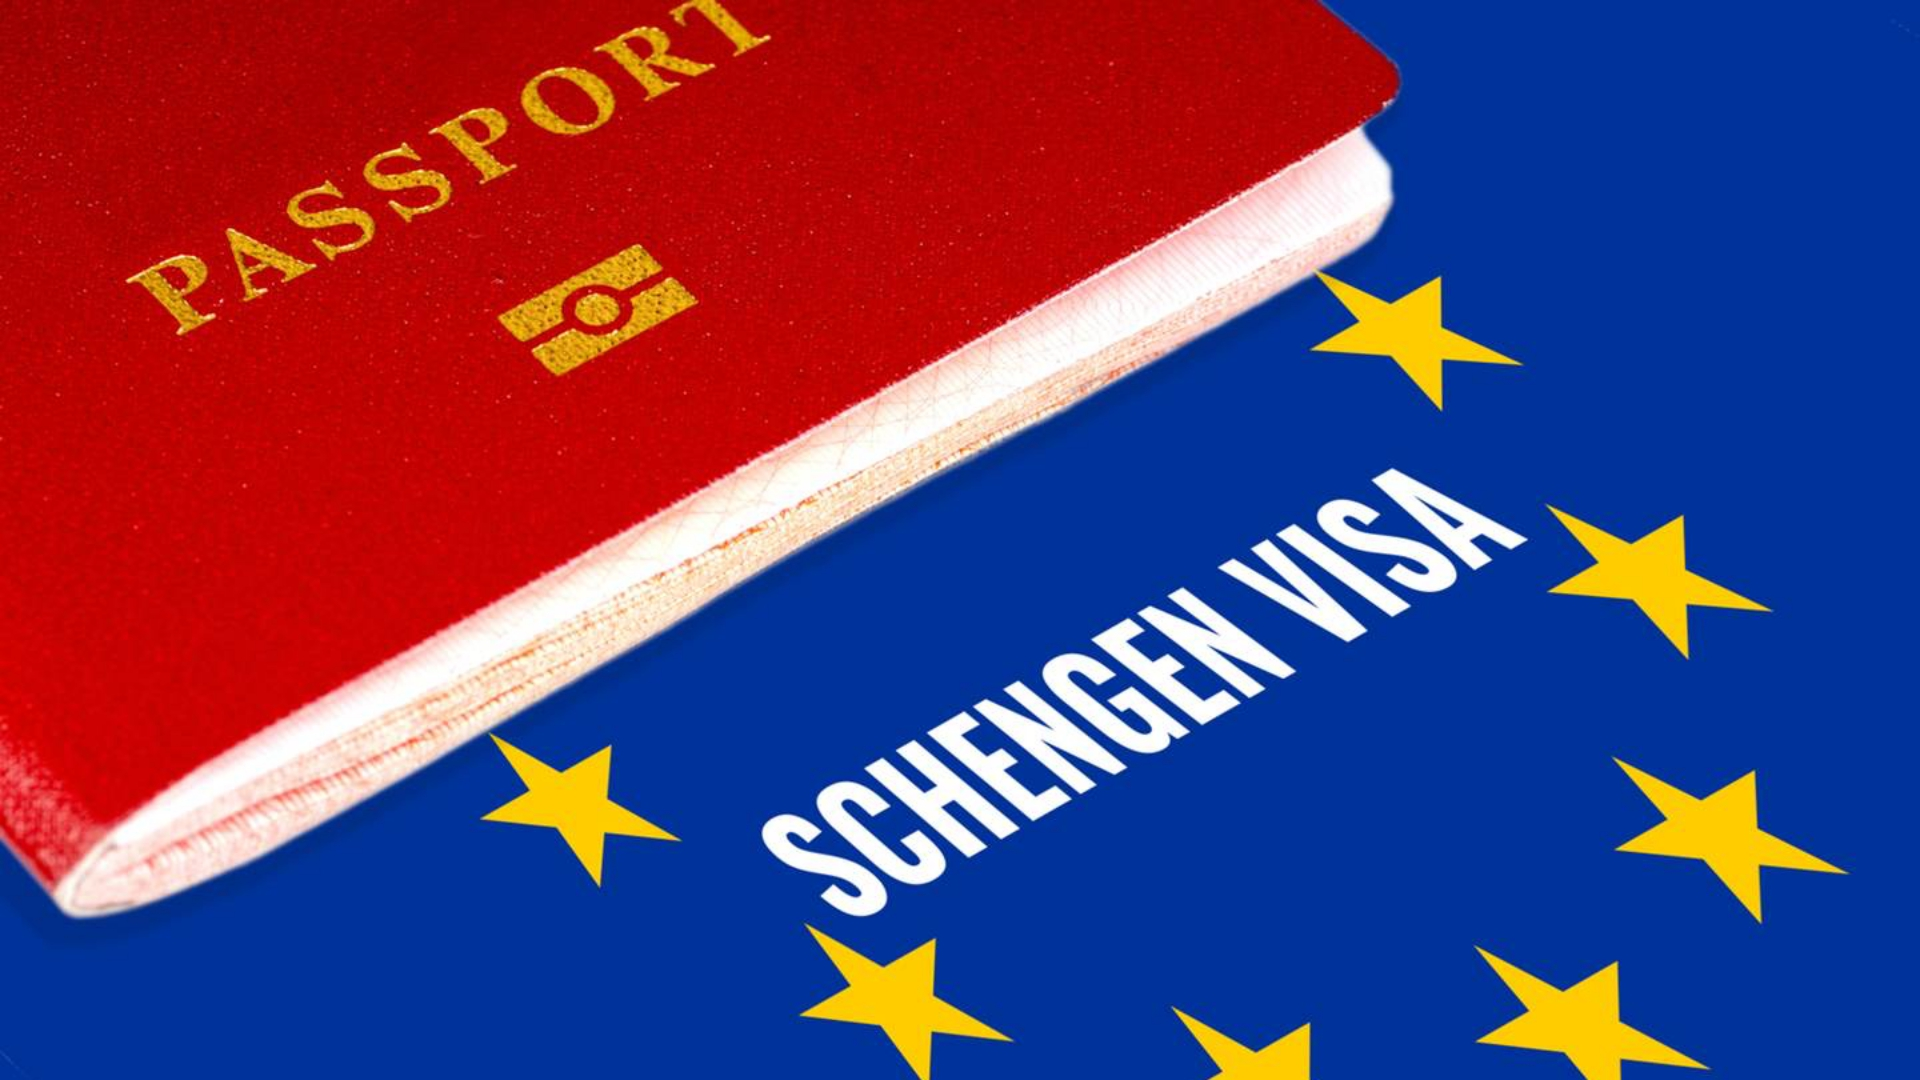 Indonesia Bebas Visa Schengen. Mission Impossible or Possible?